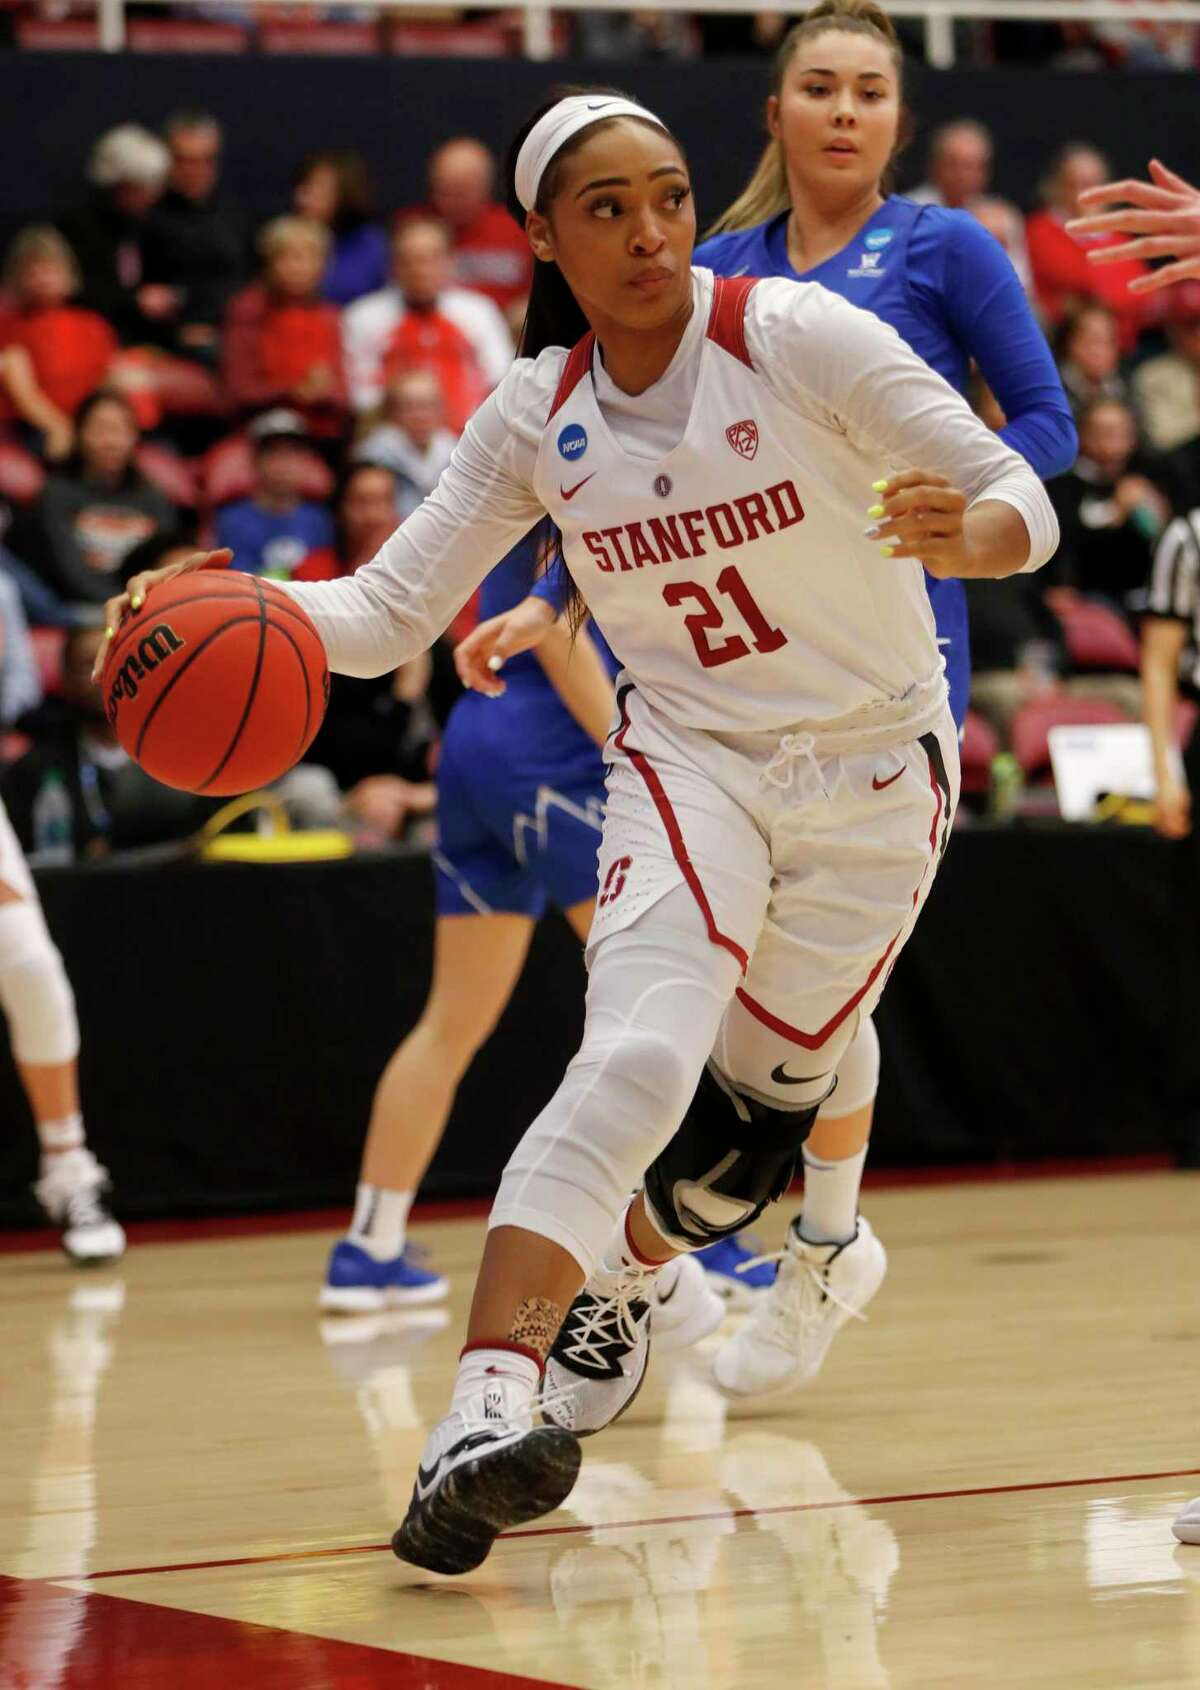 STANFORD, CA - MARCH 25: Stanford's DiJonai Carrington (21) dribbles against BYU in the first quarter for their 2019 NCAA Division I second round basketball game at Maples Pavilion in Stanford, Calif., on Monday, March. 25, 2019. (Photo by Nhat V. Meyer/MediaNews Group/The Mercury News via Getty Images)